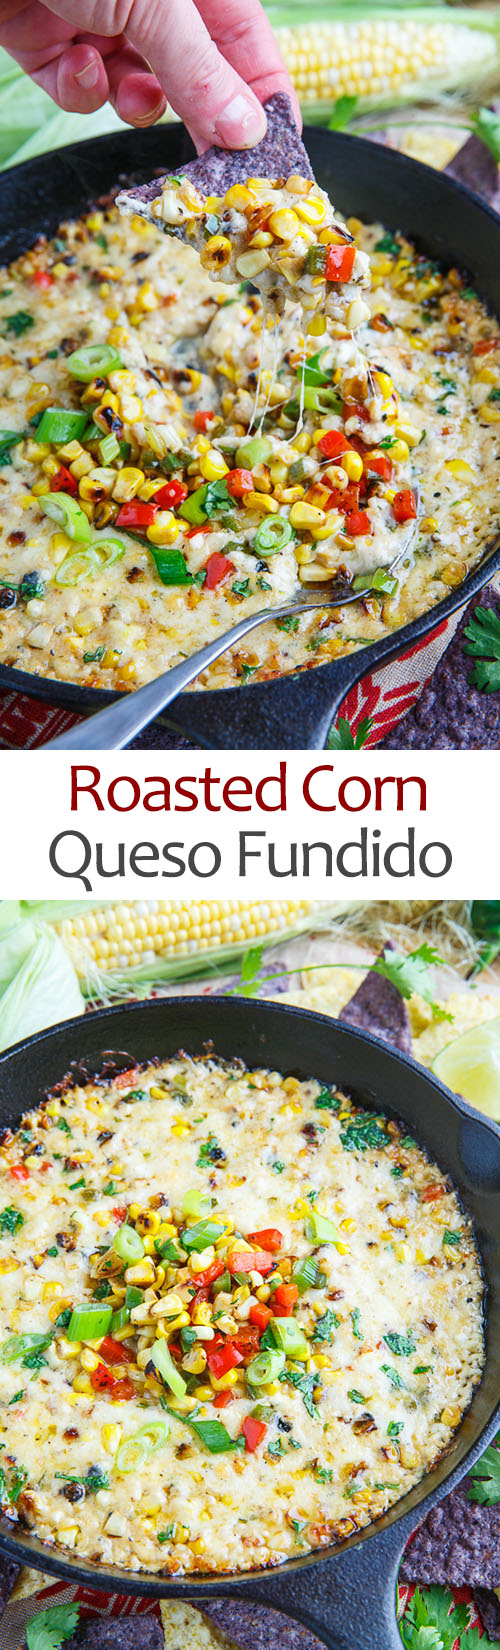 Roasted Corn Queso Fundido